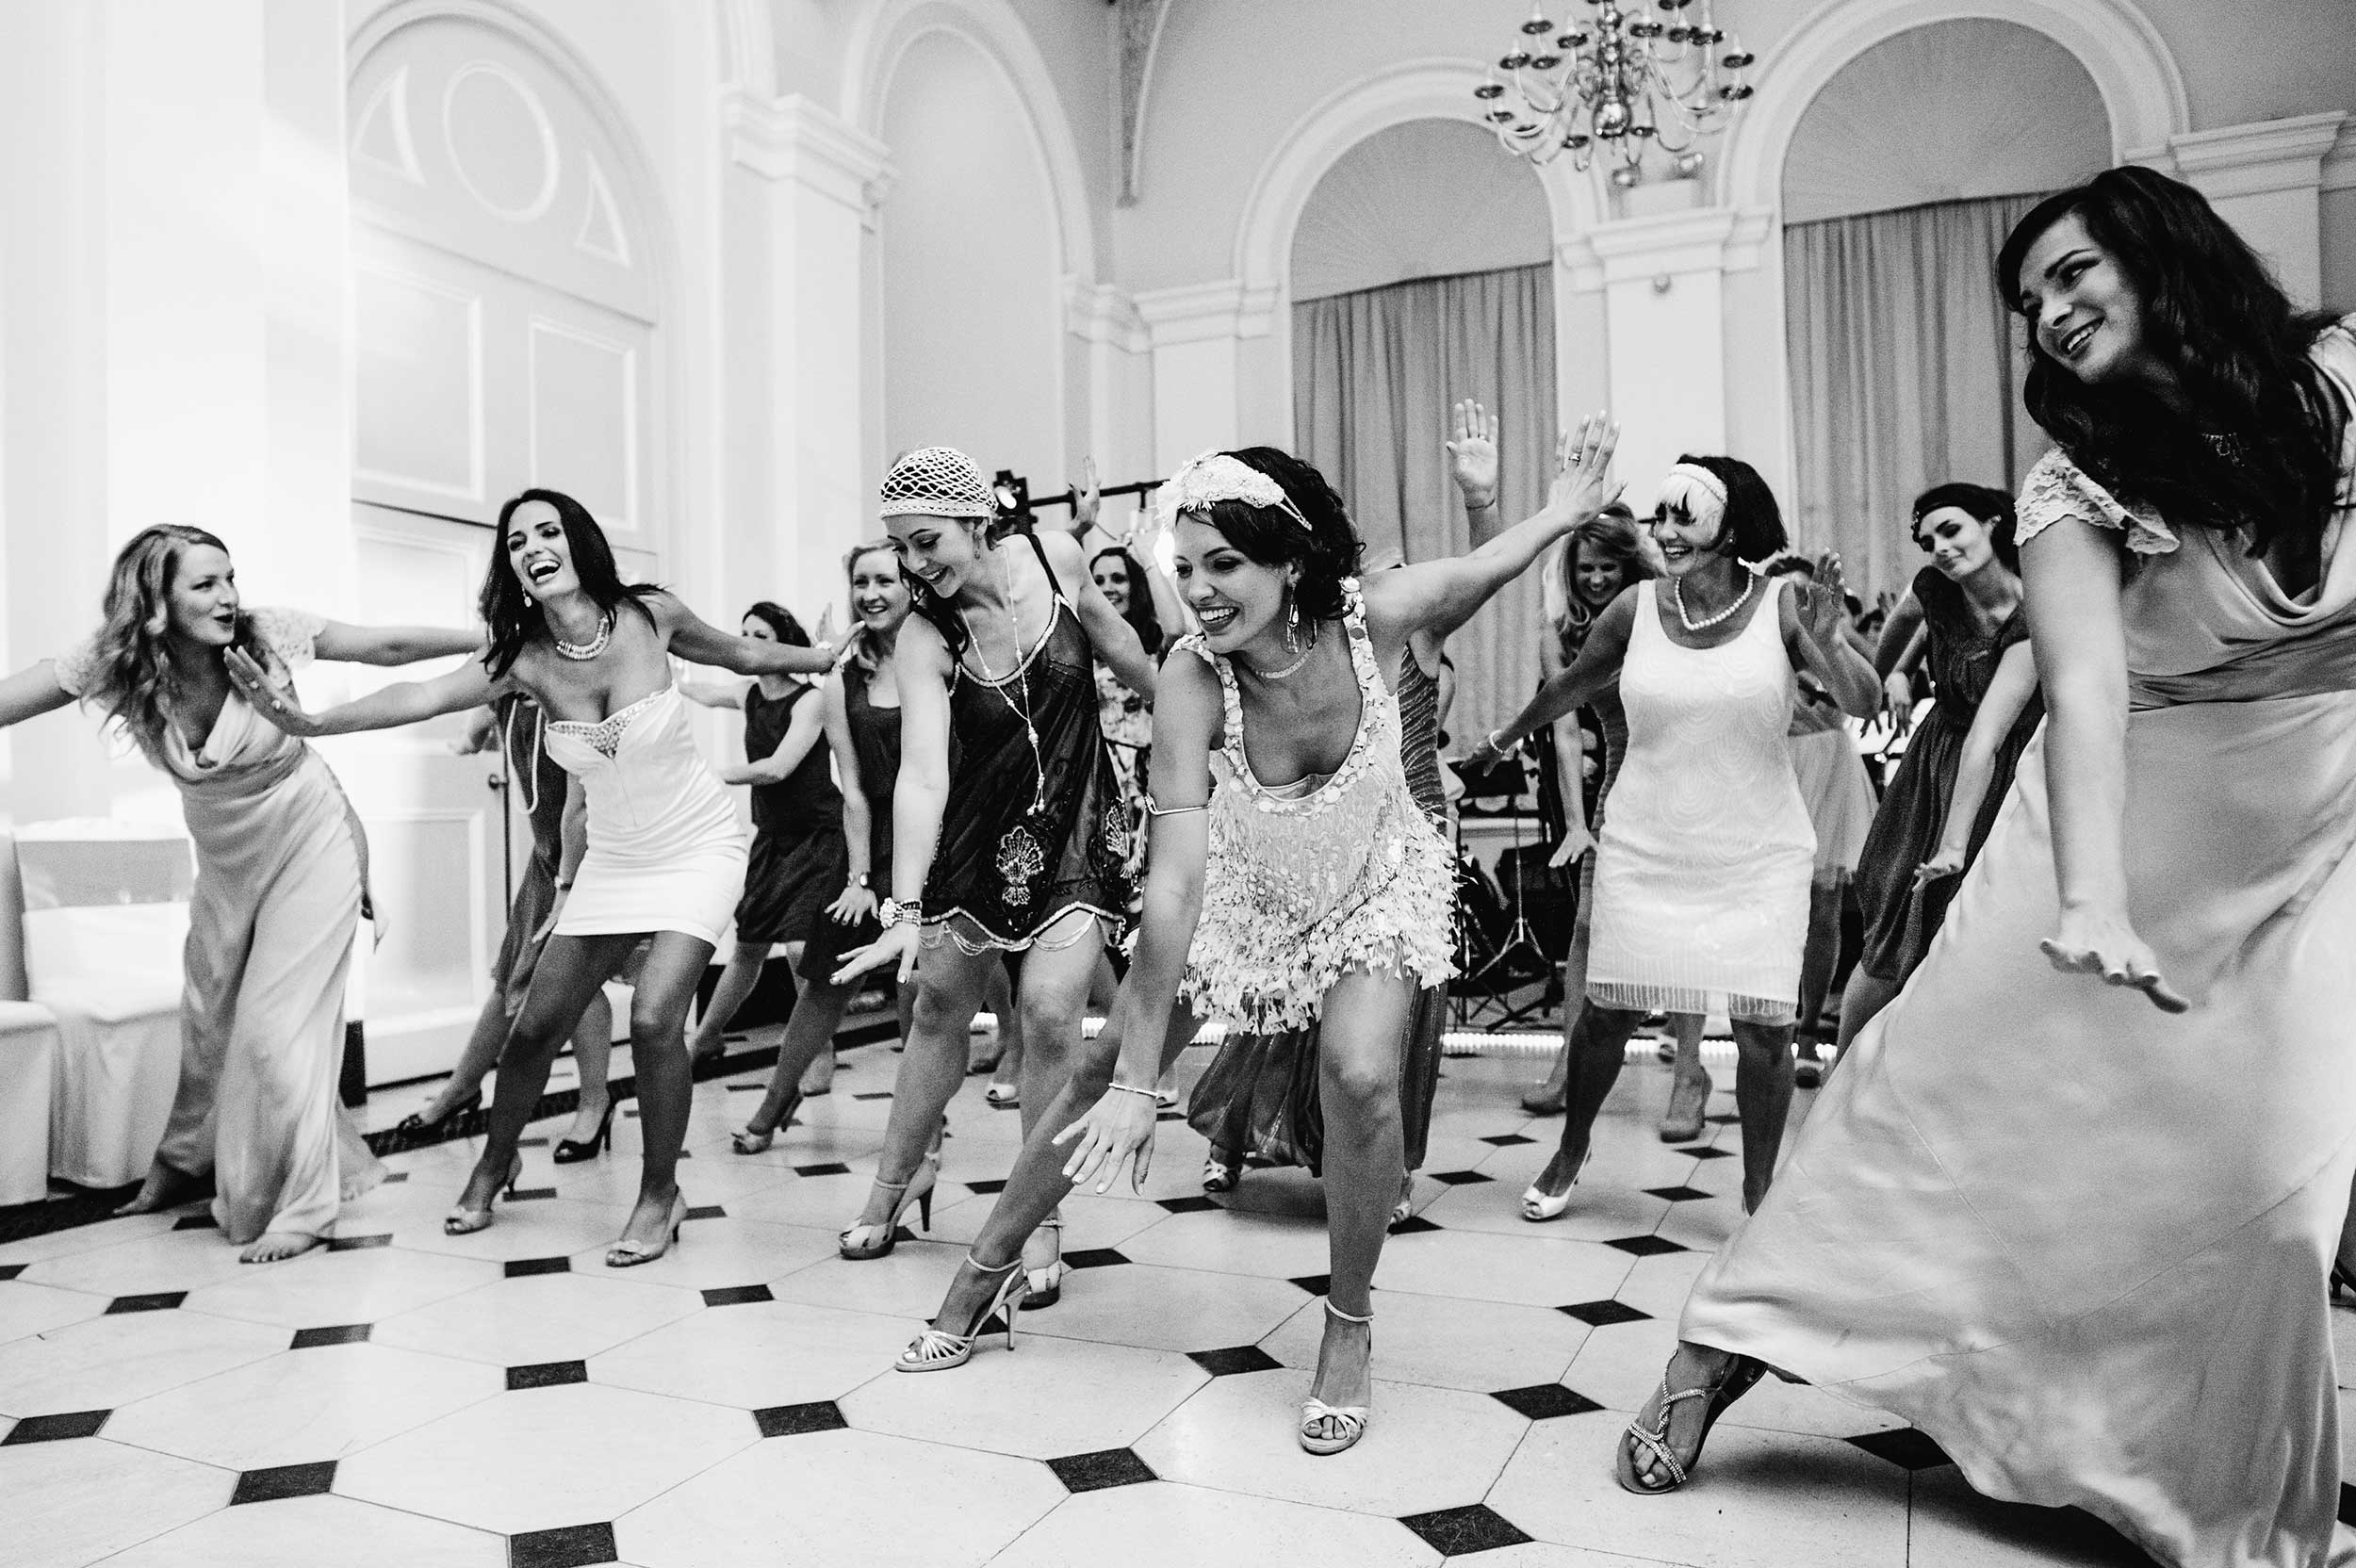 Dancing guests at a wedding at Blenheim Palace